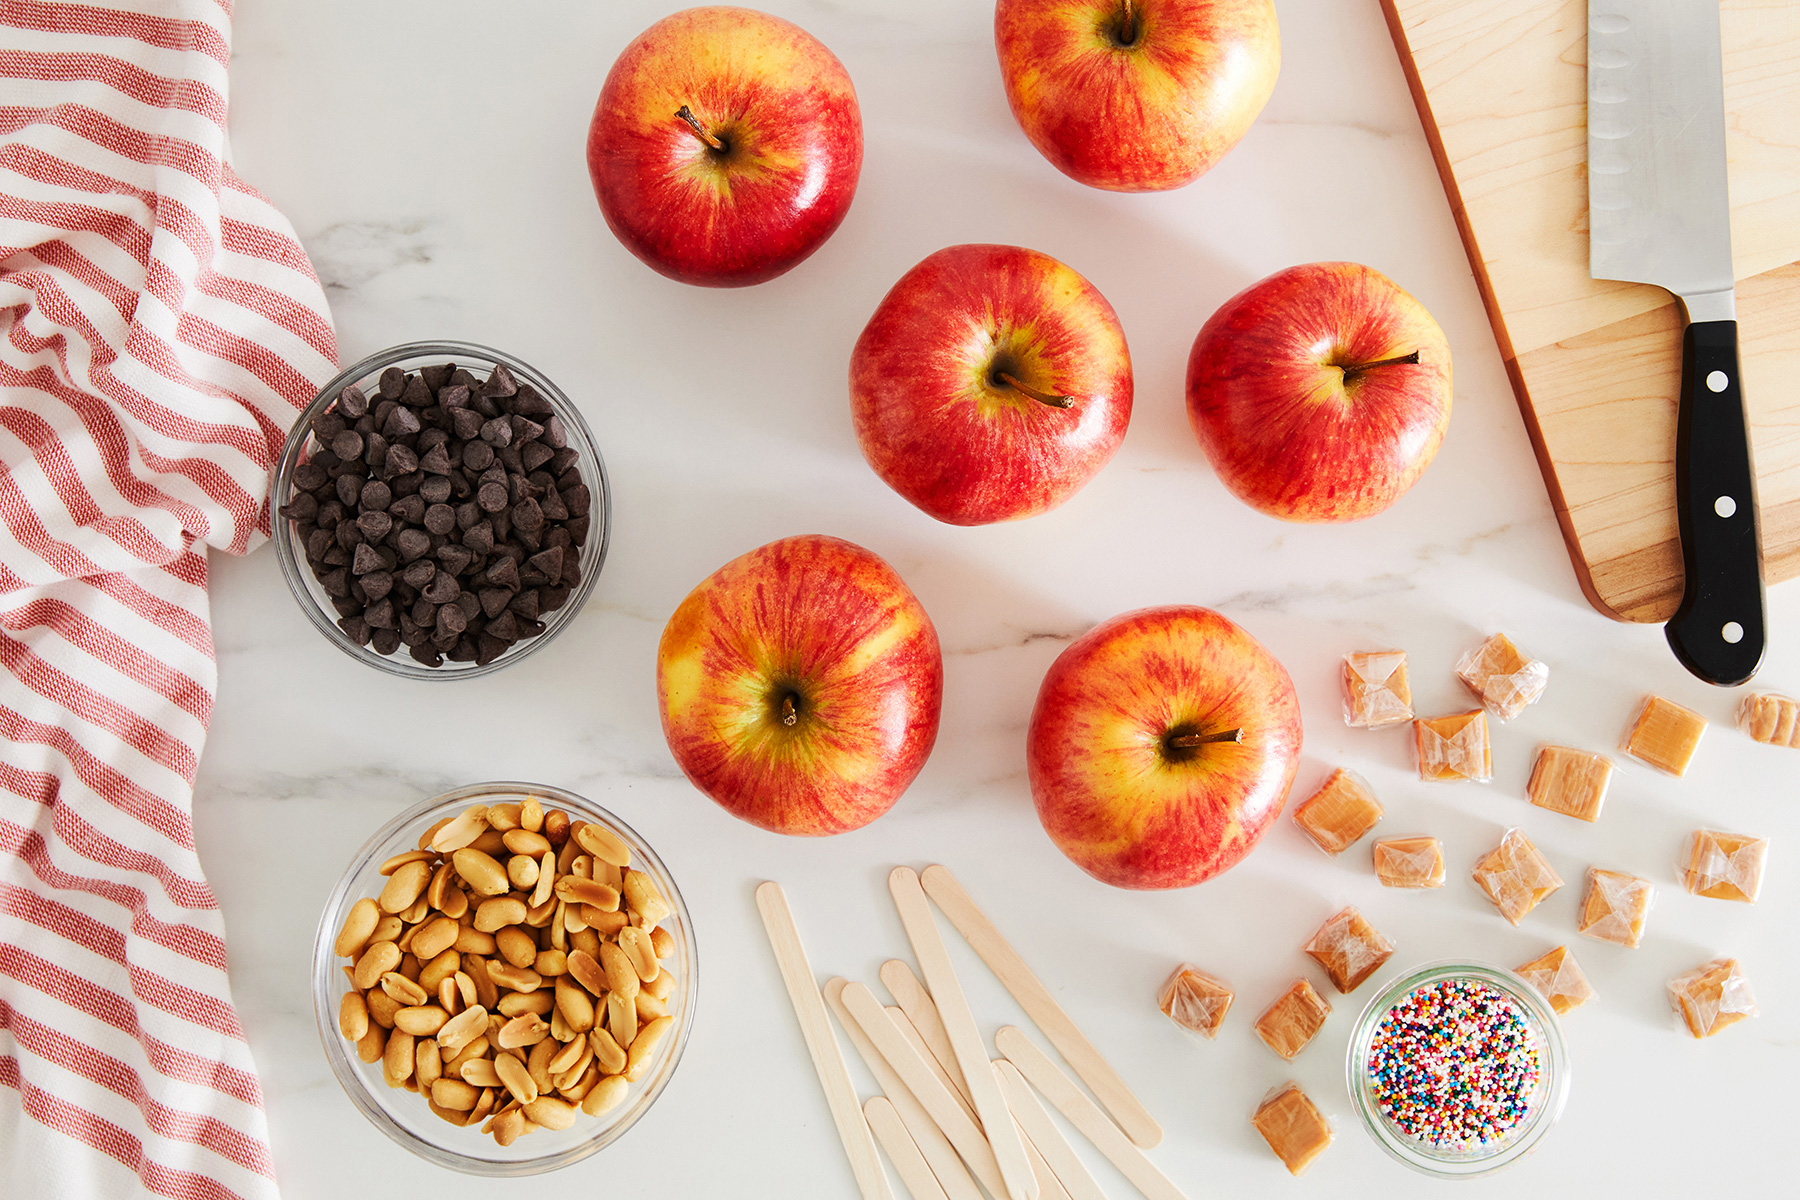 ingredients atop countertop for candy apples